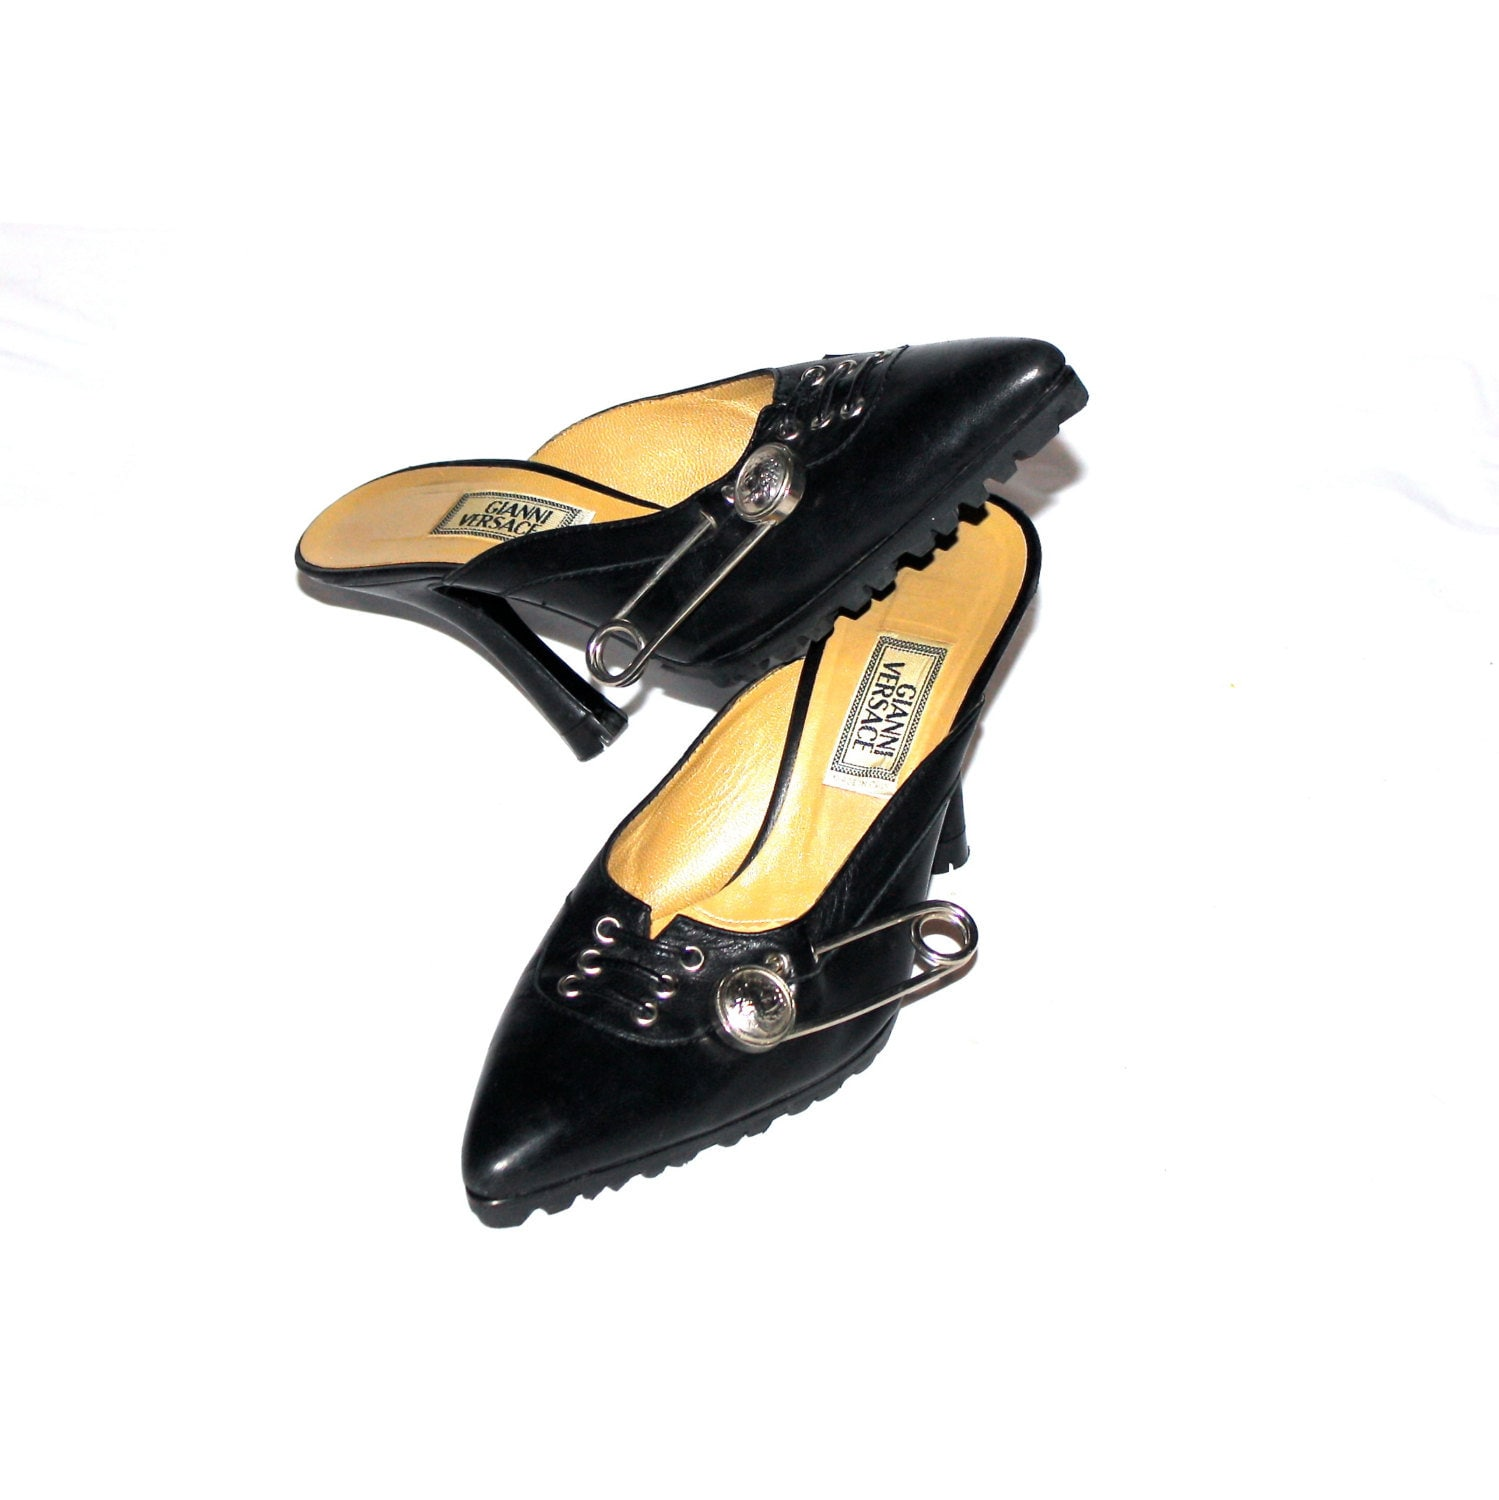 Vintage Gianni Versace Safety Pin Sunglasses Mod 427 Col 279: GIANNI VERSACE Vintage Leather Medusa Safety Pin Shoes